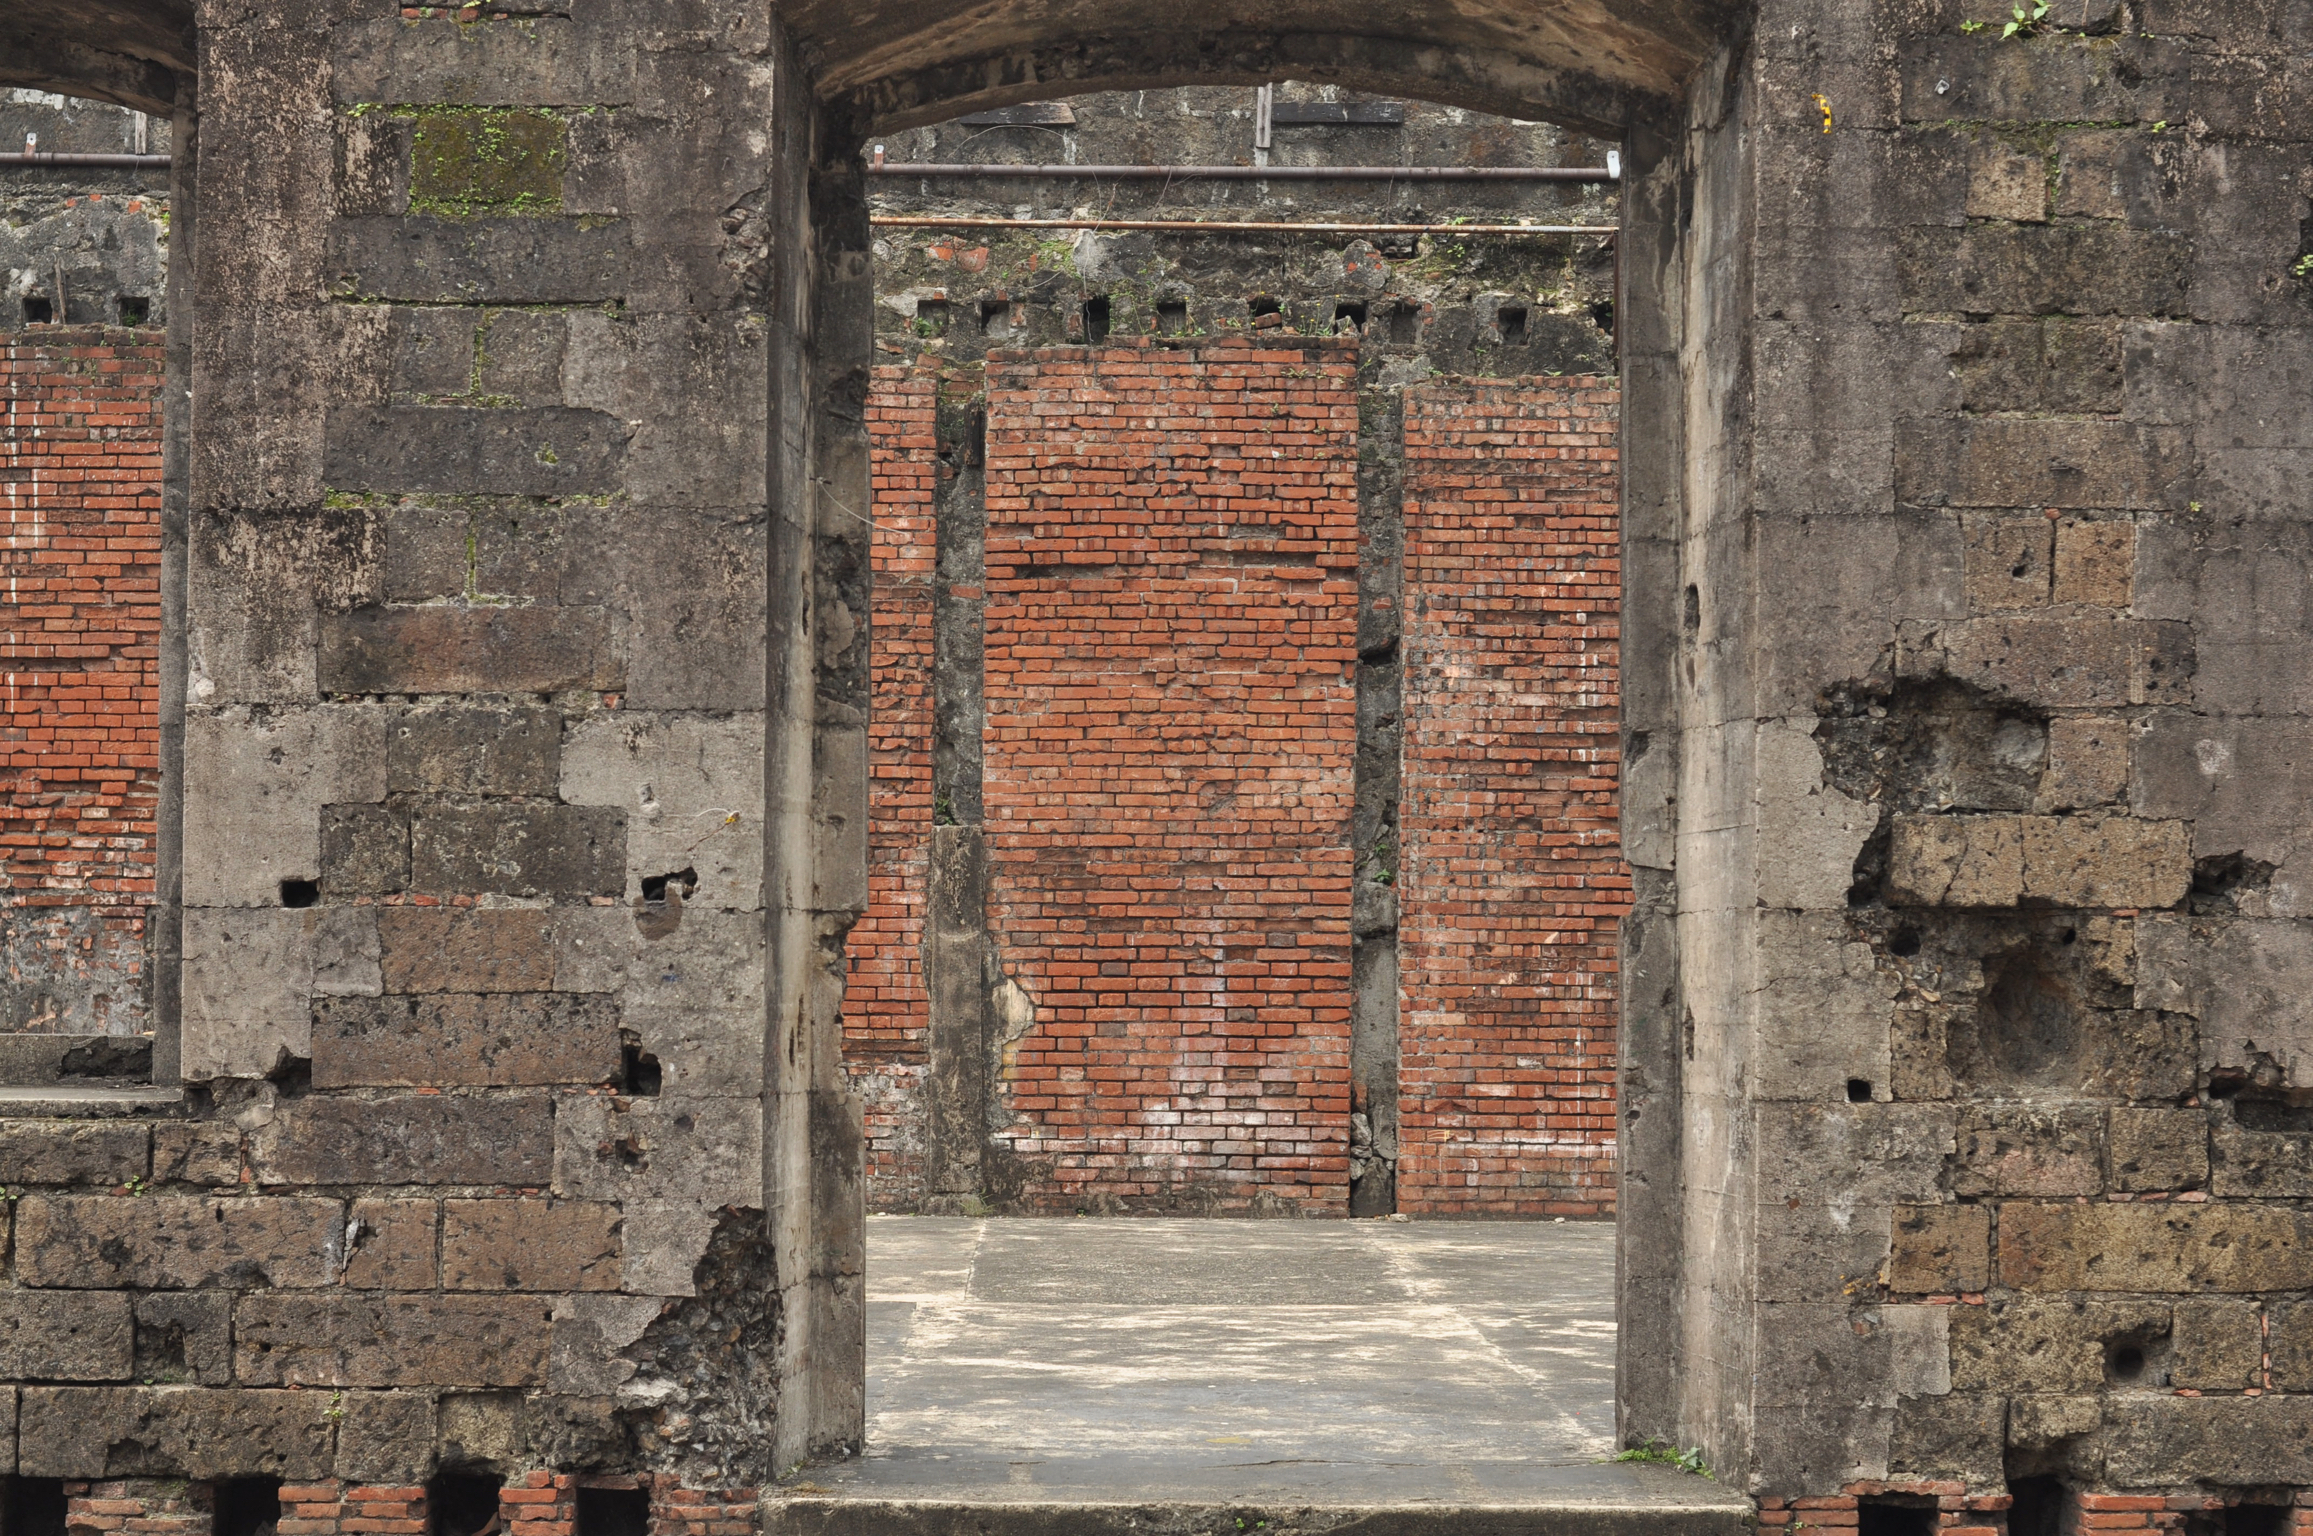 Stone wall leading into remains of buildings in Fort Santiago Intramuros, Manila, Philippines